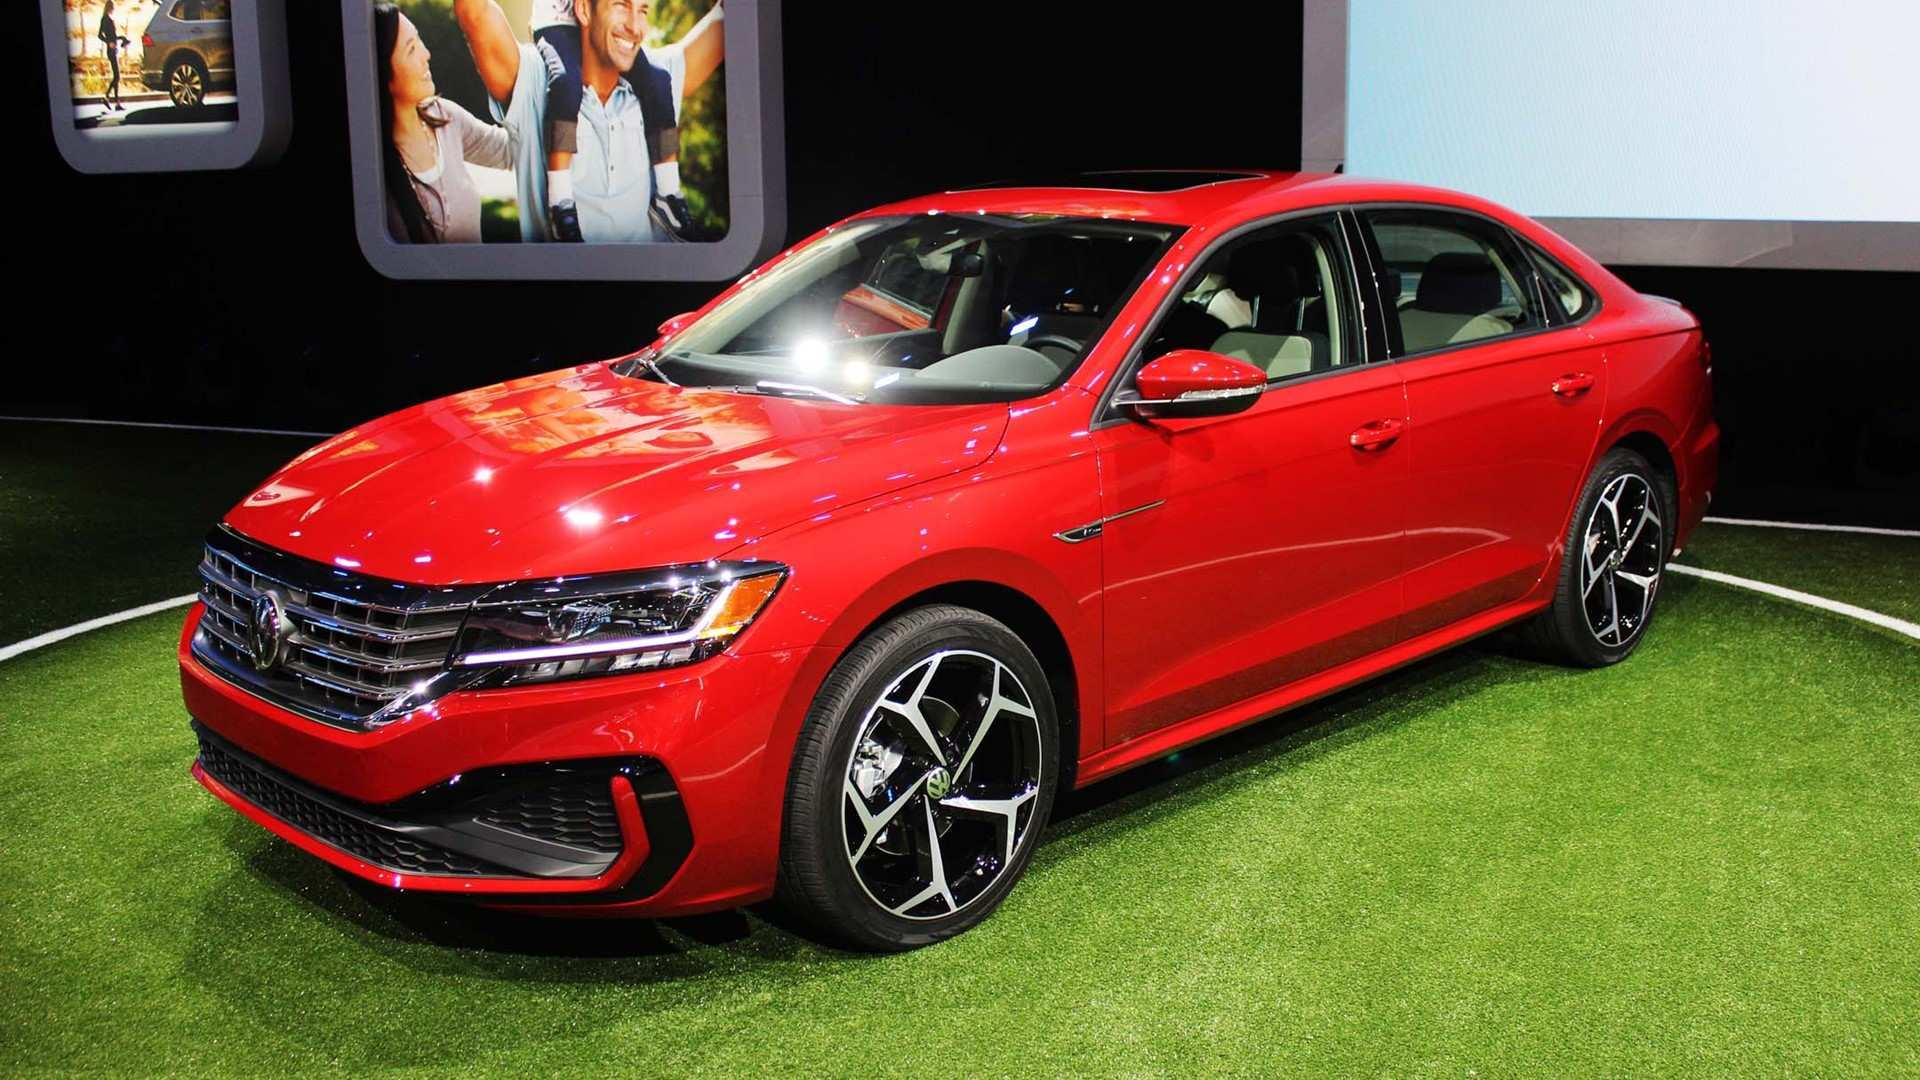 77 All New Next Generation Vw Cc Price Design And Review